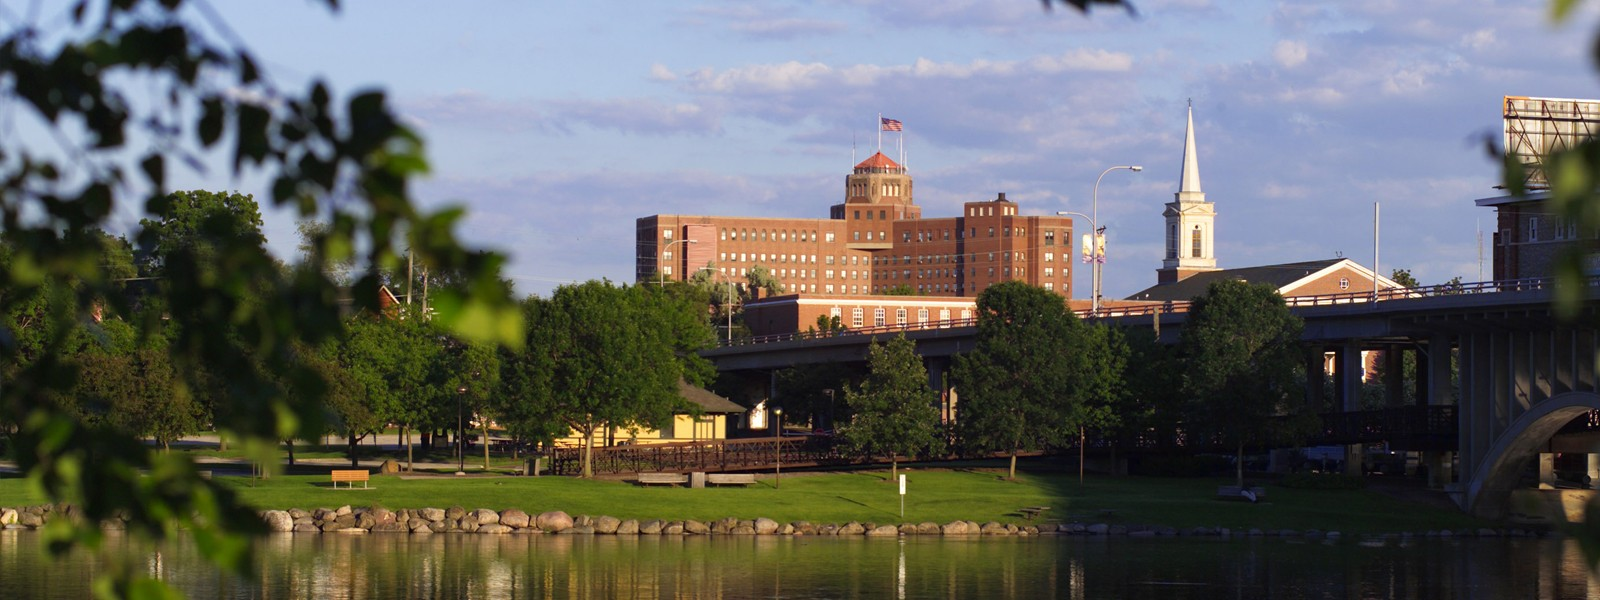 Rockford is a rapidly developing city in terms of culture and amenities. Along with a lively and exciting downtown area, Rockford residents enjoy beautiful parks, numerous sports and recreational facilities and a wide variety of retail options.